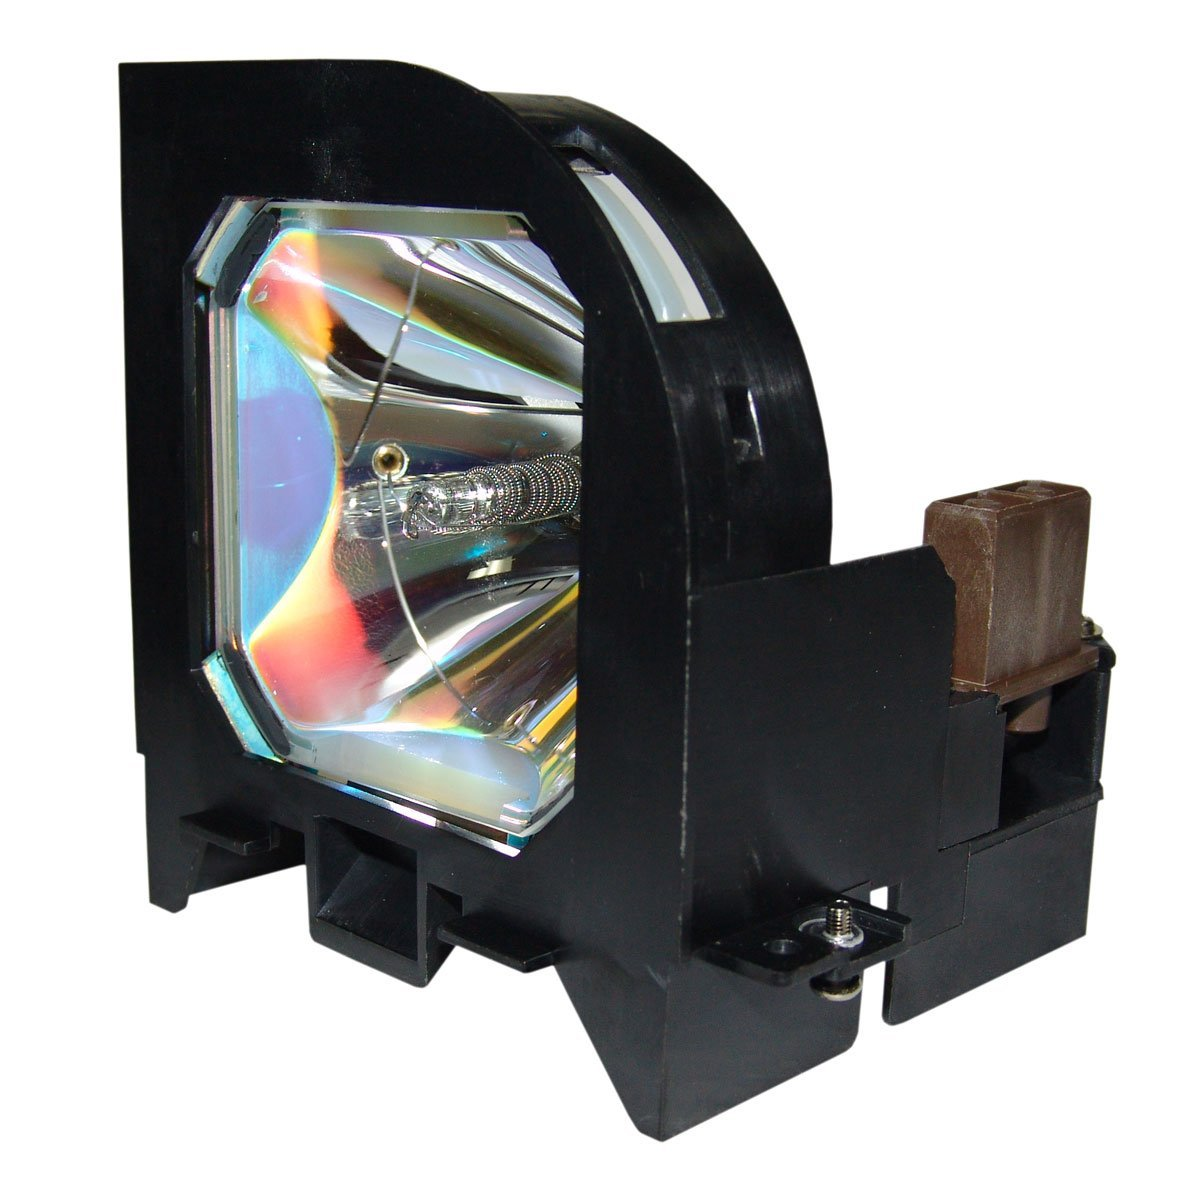 High Quality Projector Lamp With housiong LMP-F250 LMPF250 for SONY VPL-FX50 VPL-FE110 with 180days warranty original replacement projector lamp bulb lmp f272 for sony vpl fx35 vpl fh30 vpl fh35 vpl fh31 projector nsha275w